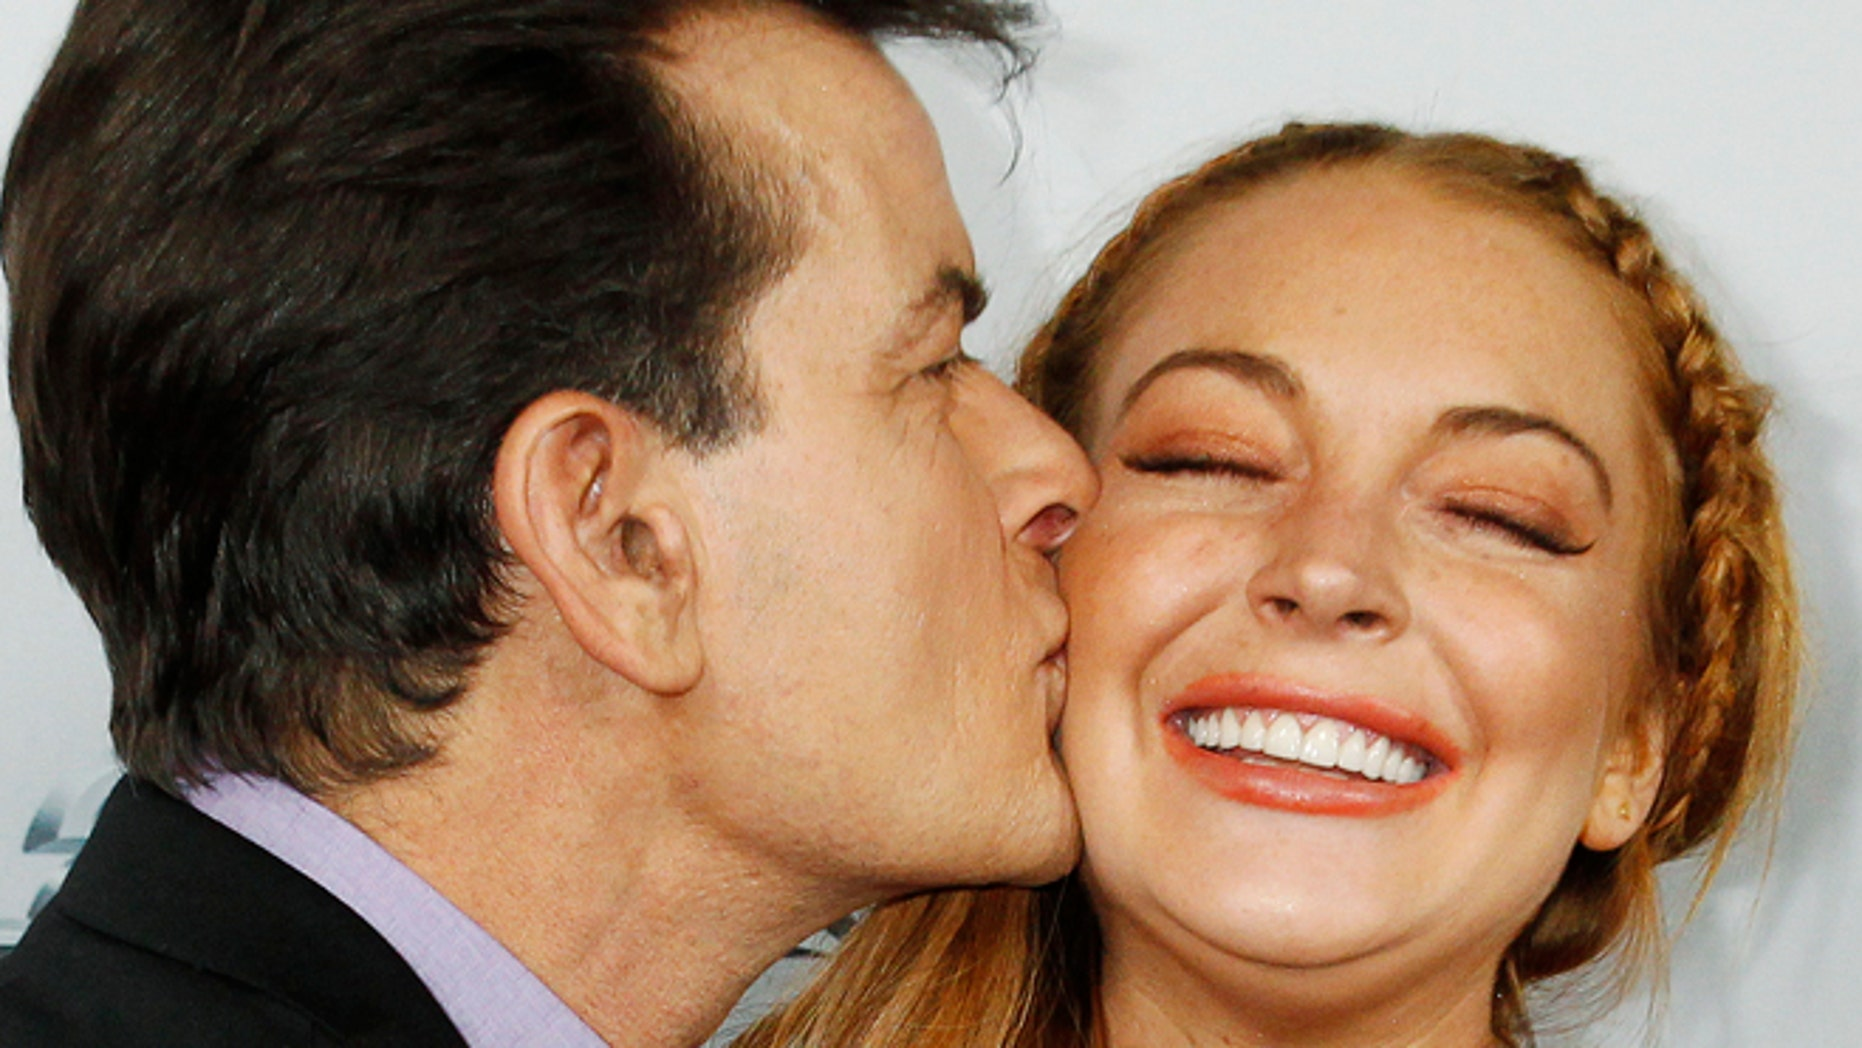 """FILE 2013: Charlie Sheen kisses co-star Lindsay Lohan on the cheek as they pose at the premiere of """"Scary Movie"""" in Hollywood."""